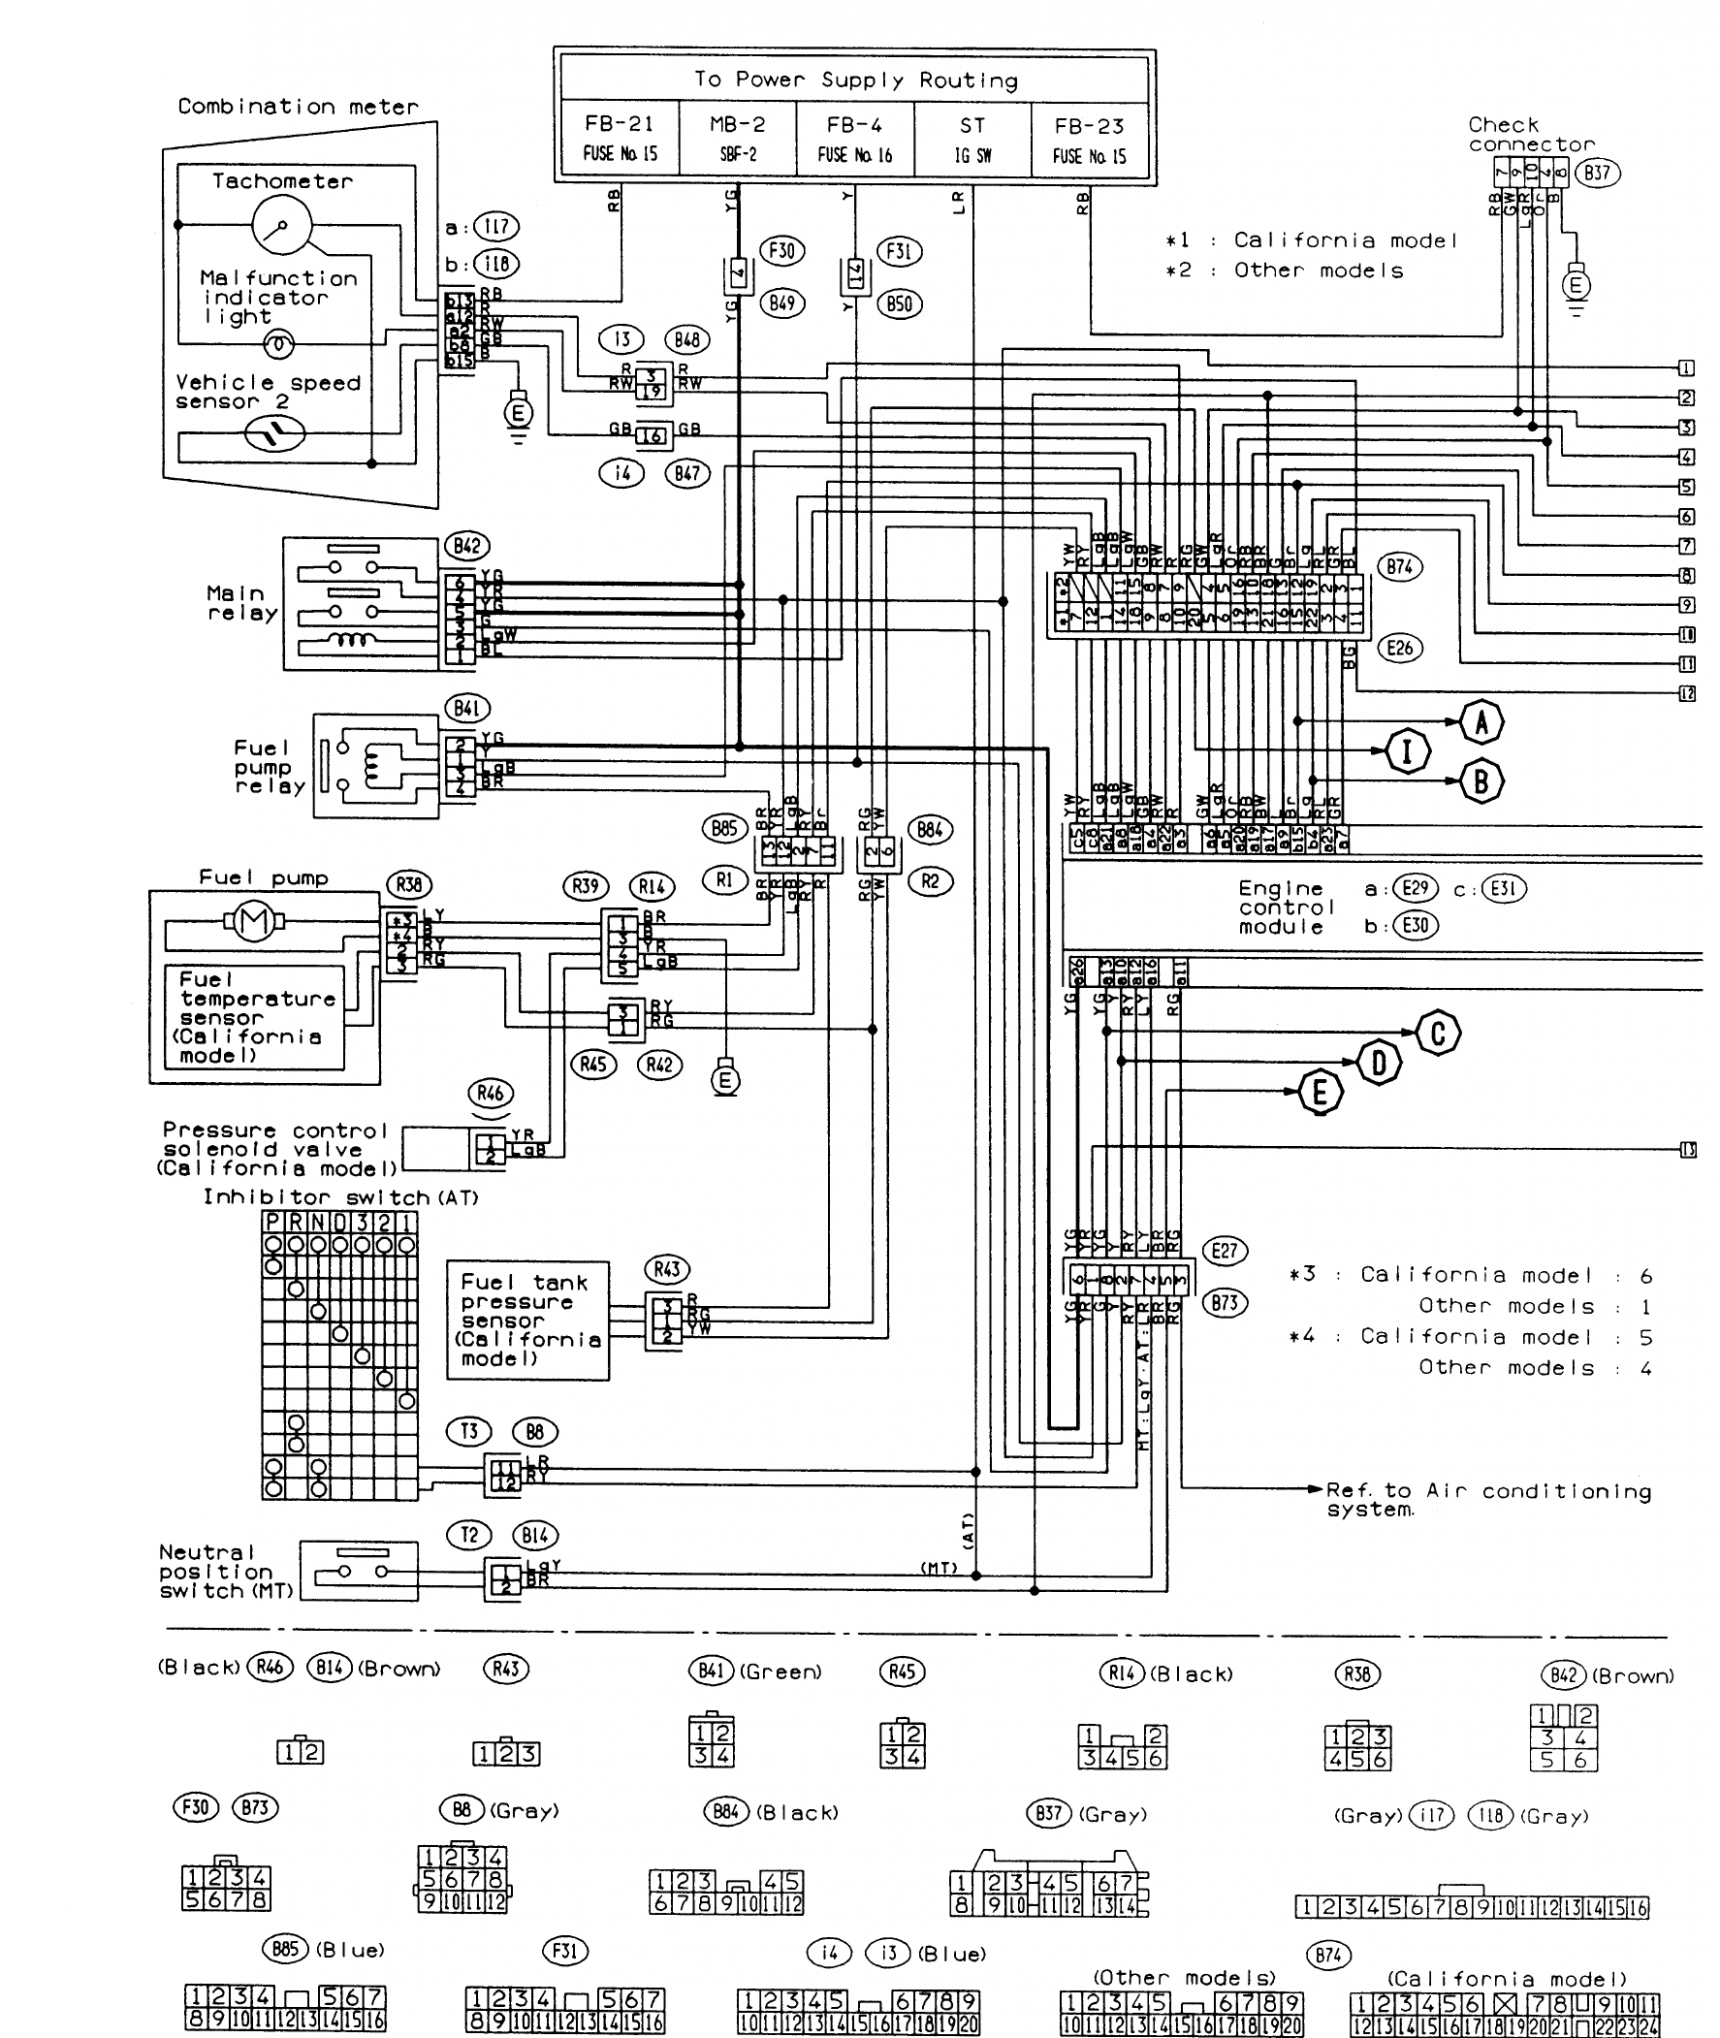 2002 subaru impreza wiring diagram - wiring diagram overview symbol-bake -  symbol-bake.aigaravenna.it  aigaravenna.it